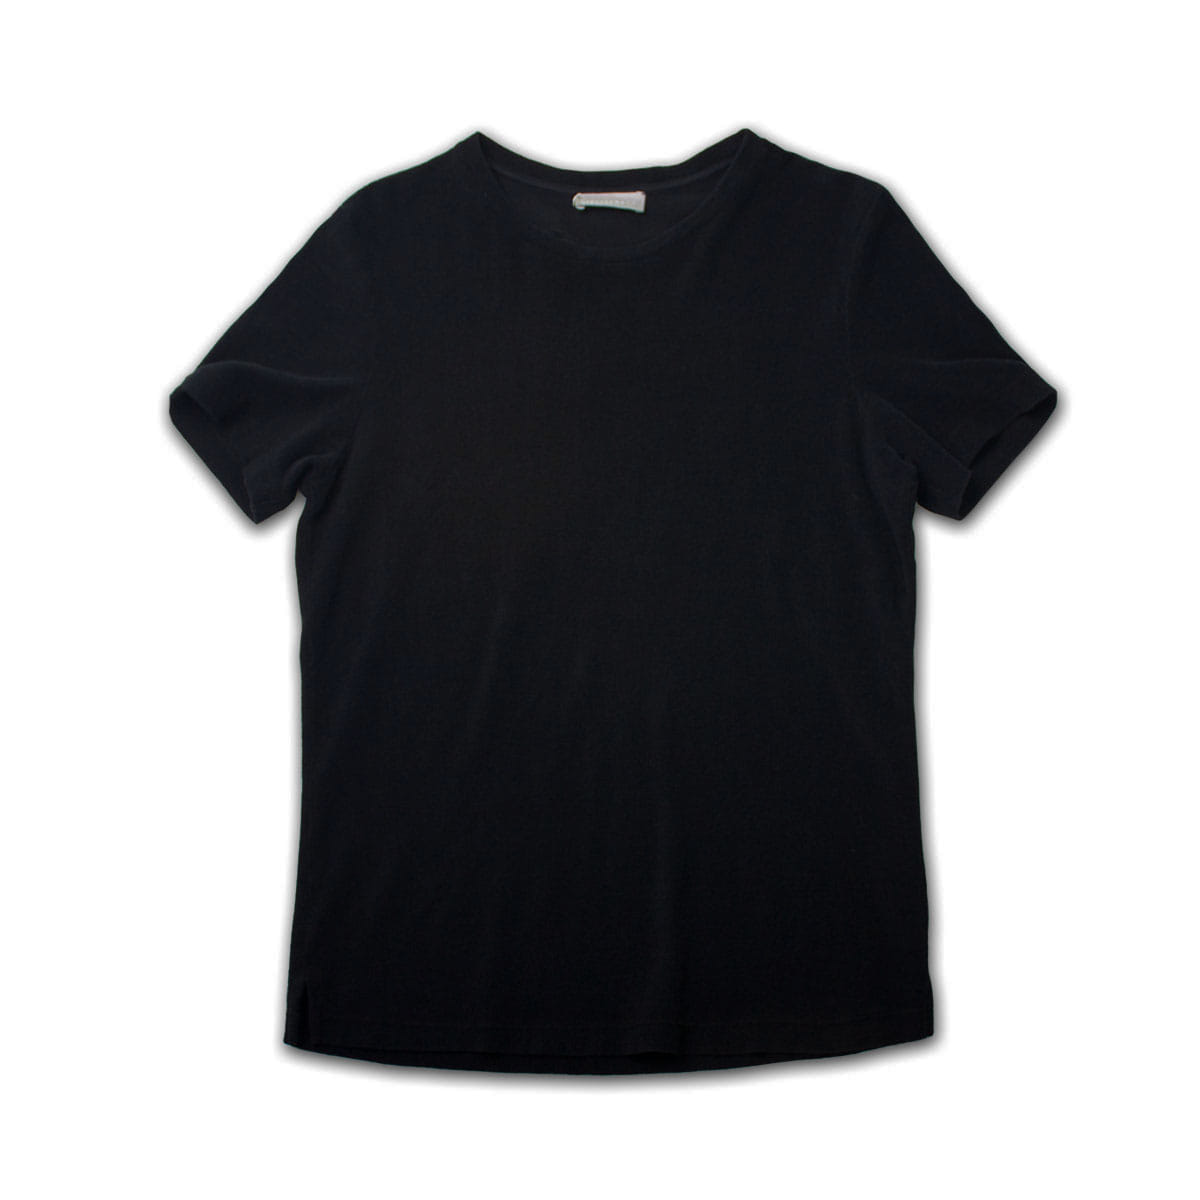 [GIRELLI BRUNI] WIDE NECK TERRY COLTH T-SHIRT 'BLACK'